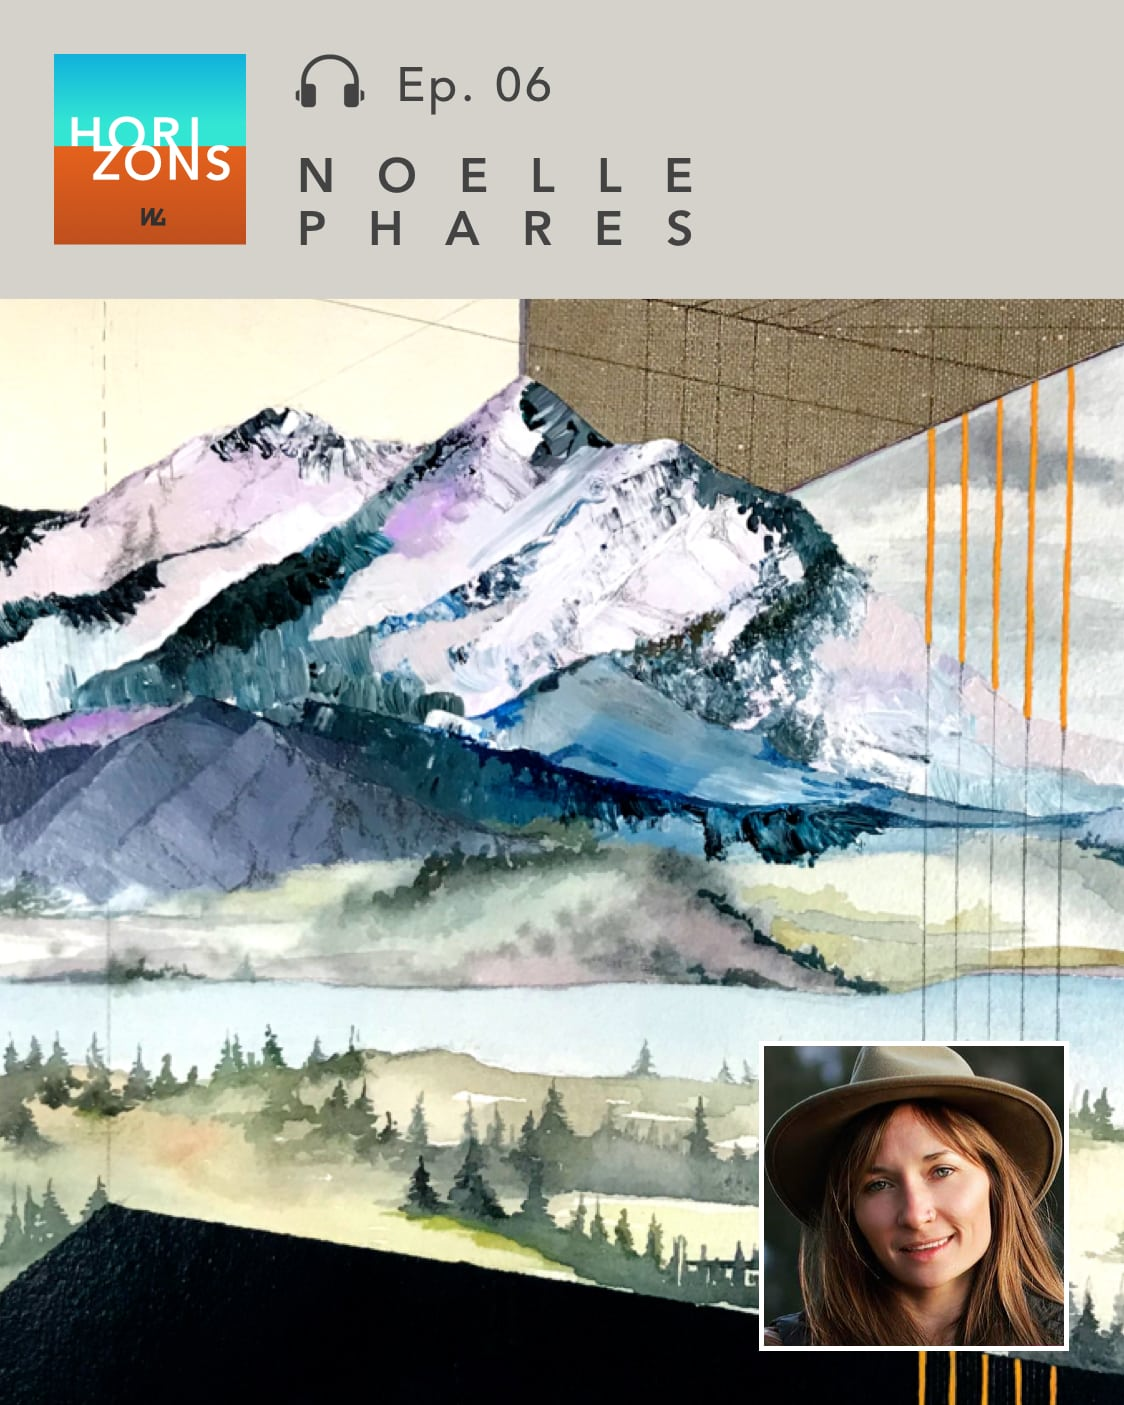 Artist Noelle Phares on Horizons by Western Gallery